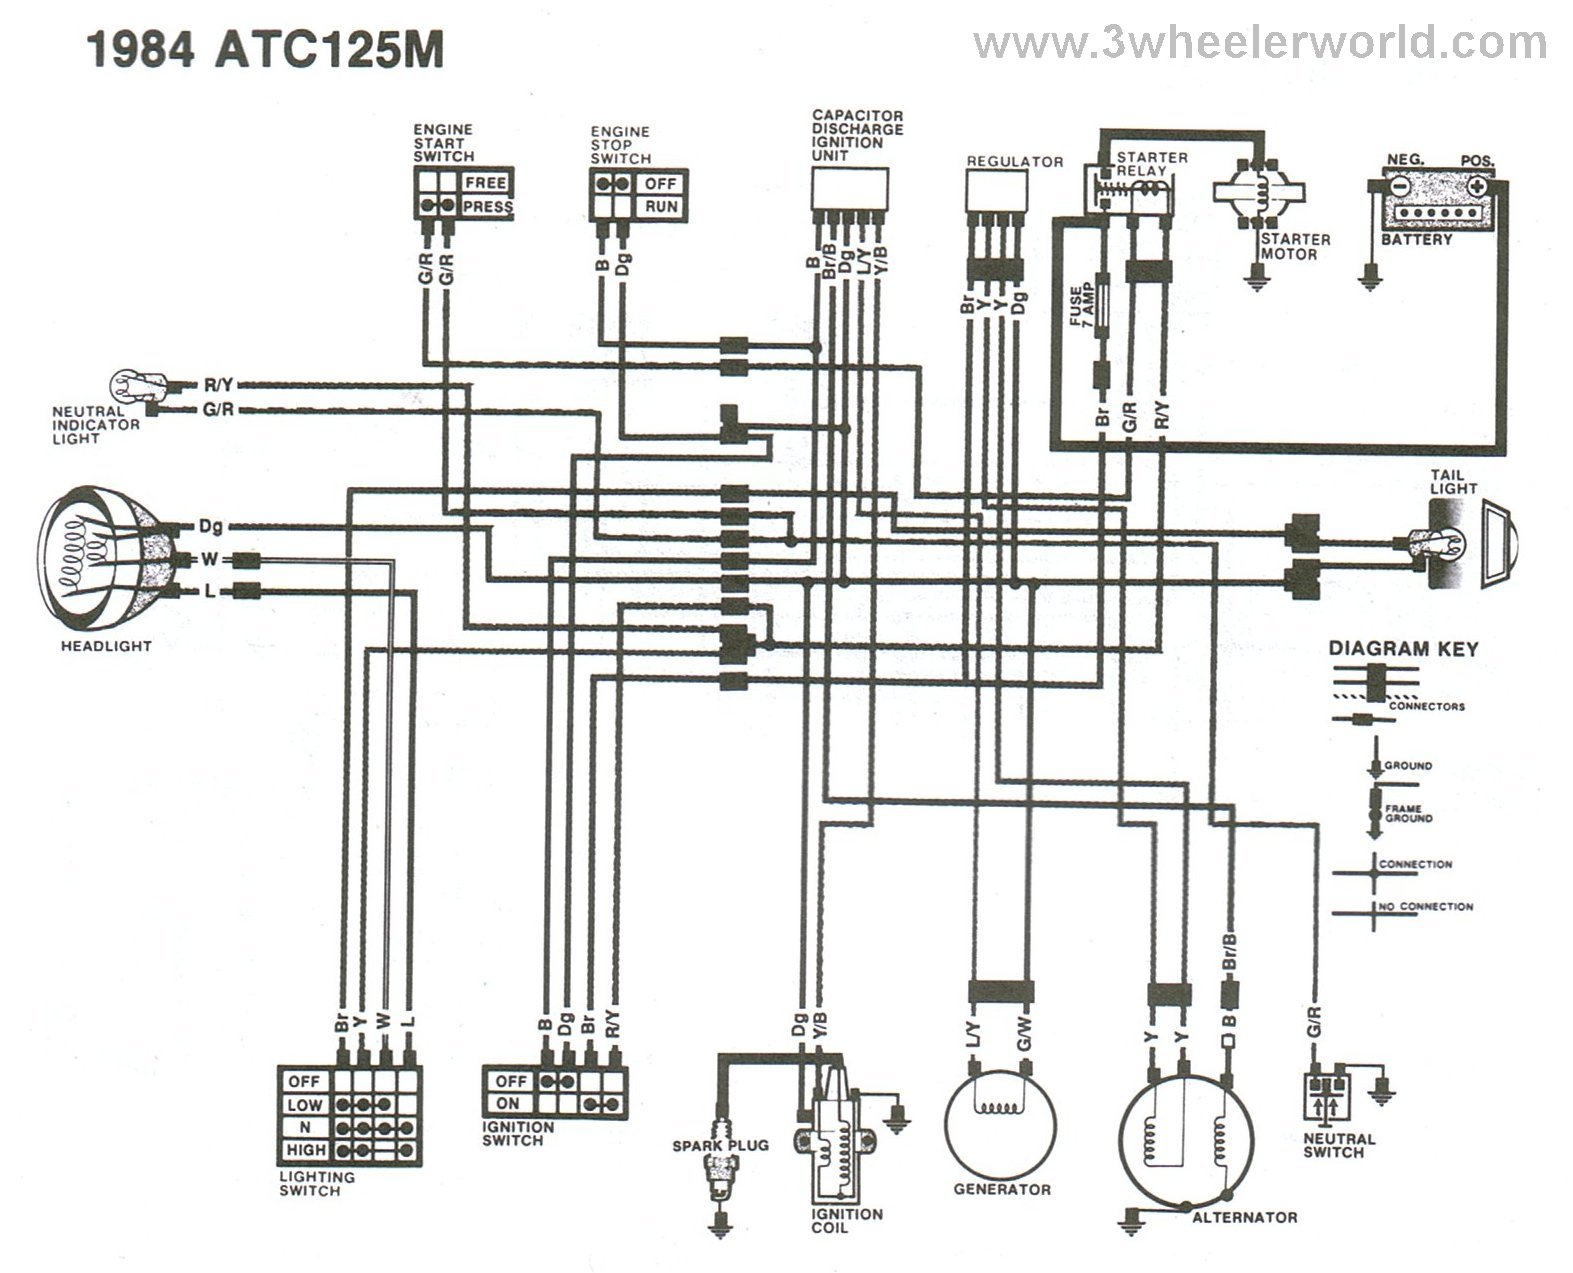 ATC125Mx84 3 wheeler world tech help honda wiring diagrams xrm 125 wiring diagram at mifinder.co